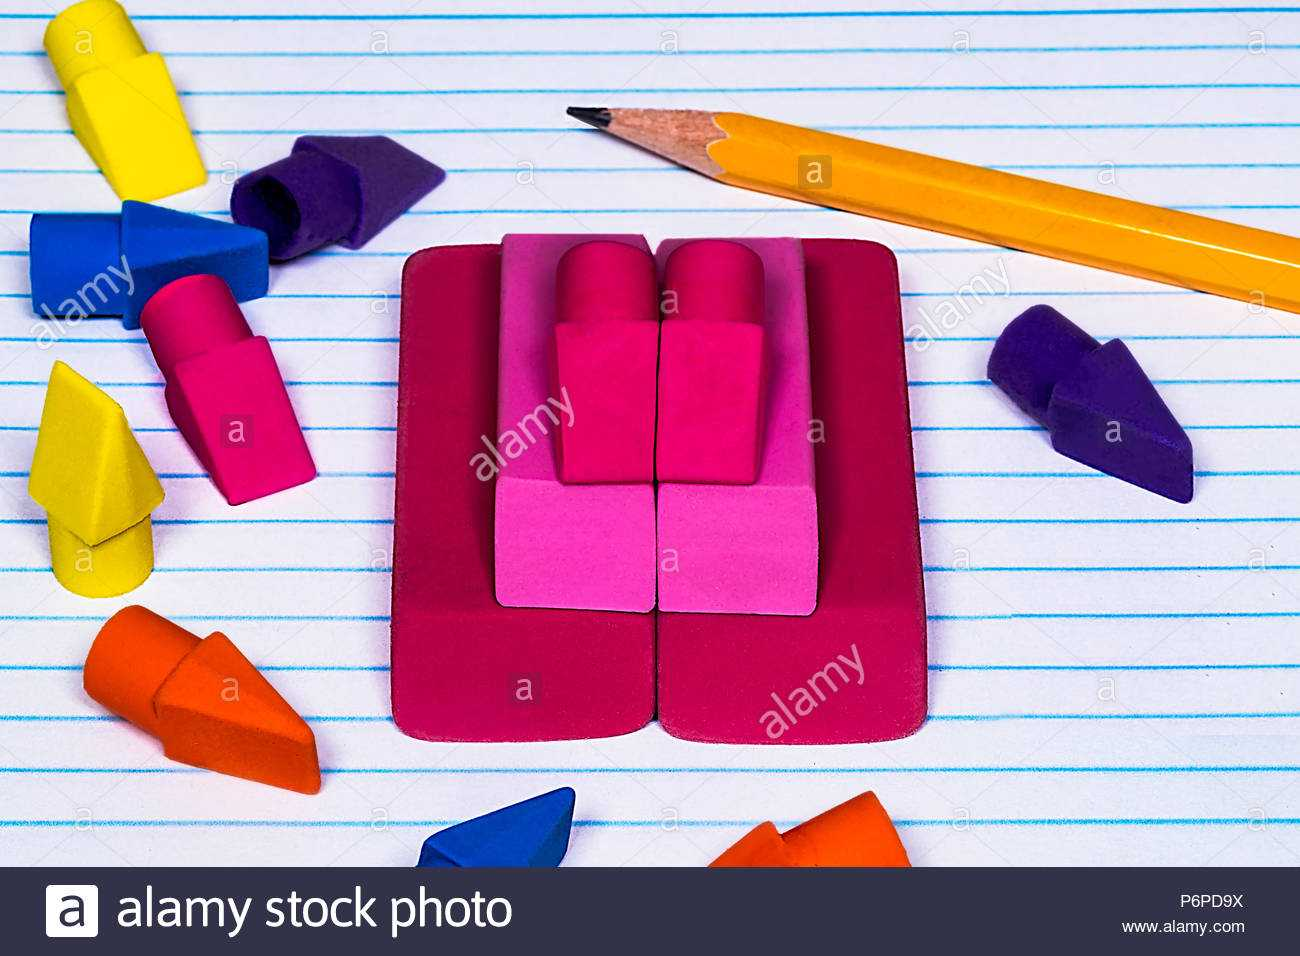 College Ruled Paper Stock Photos & College Ruled Paper Stock Regarding College Ruled Lined Paper Template Word 2007